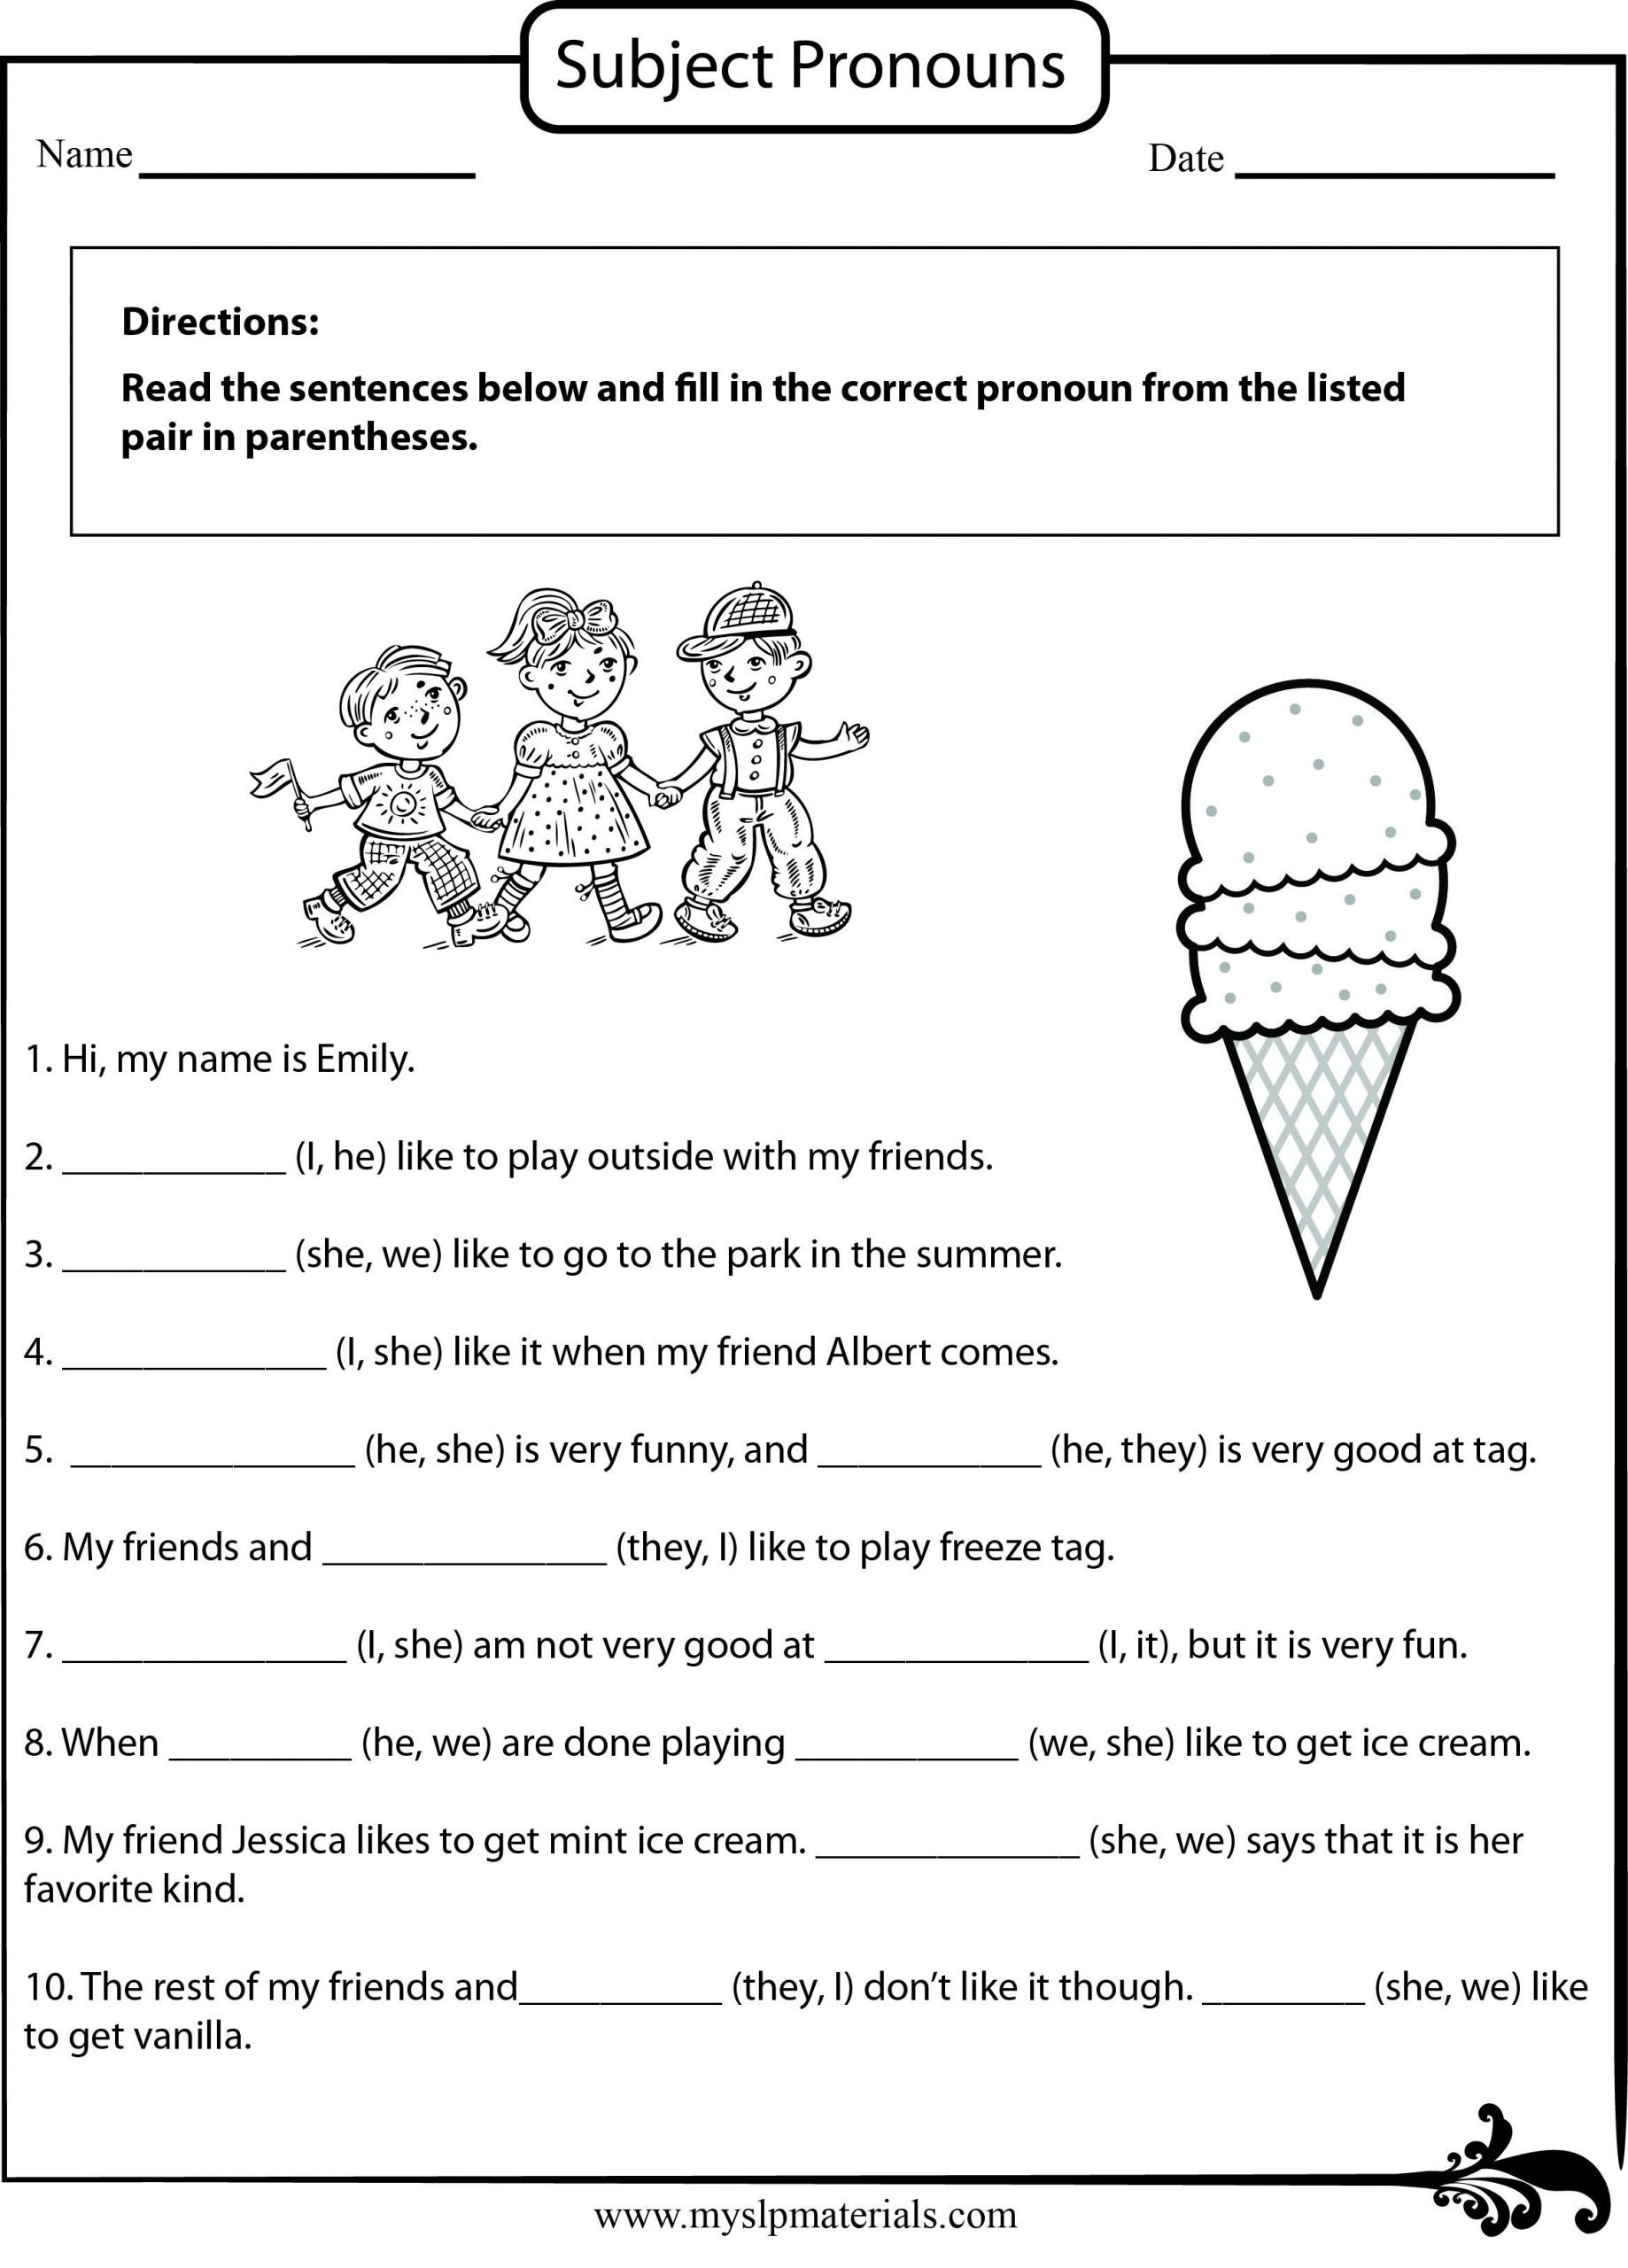 Pronoun Worksheets for 2nd Graders Subject Pronoun Speech